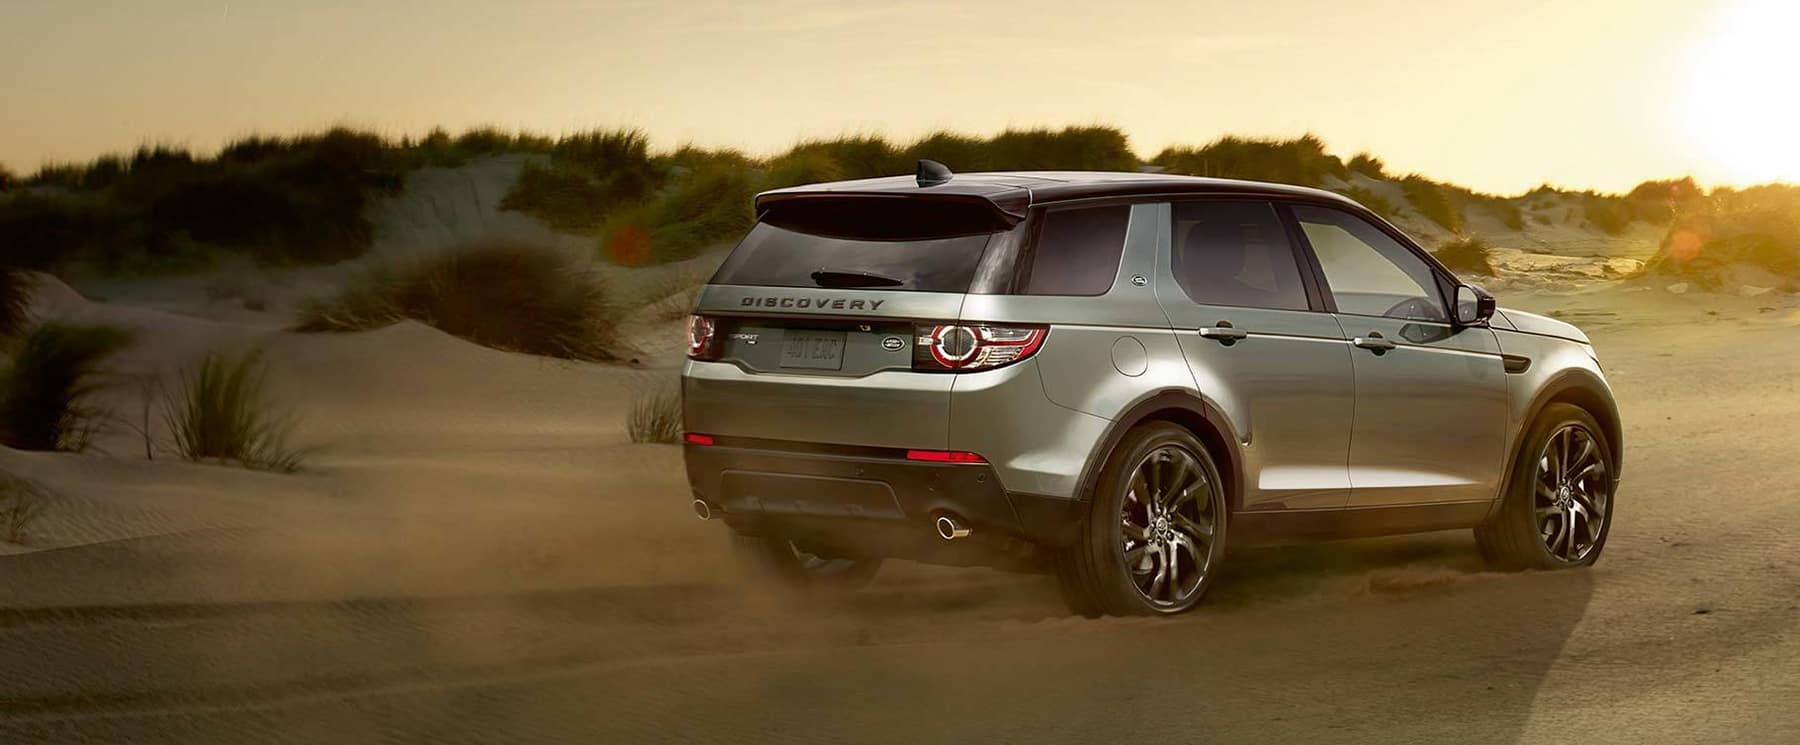 2018 land rover discovery model overview land rover louisville. Black Bedroom Furniture Sets. Home Design Ideas